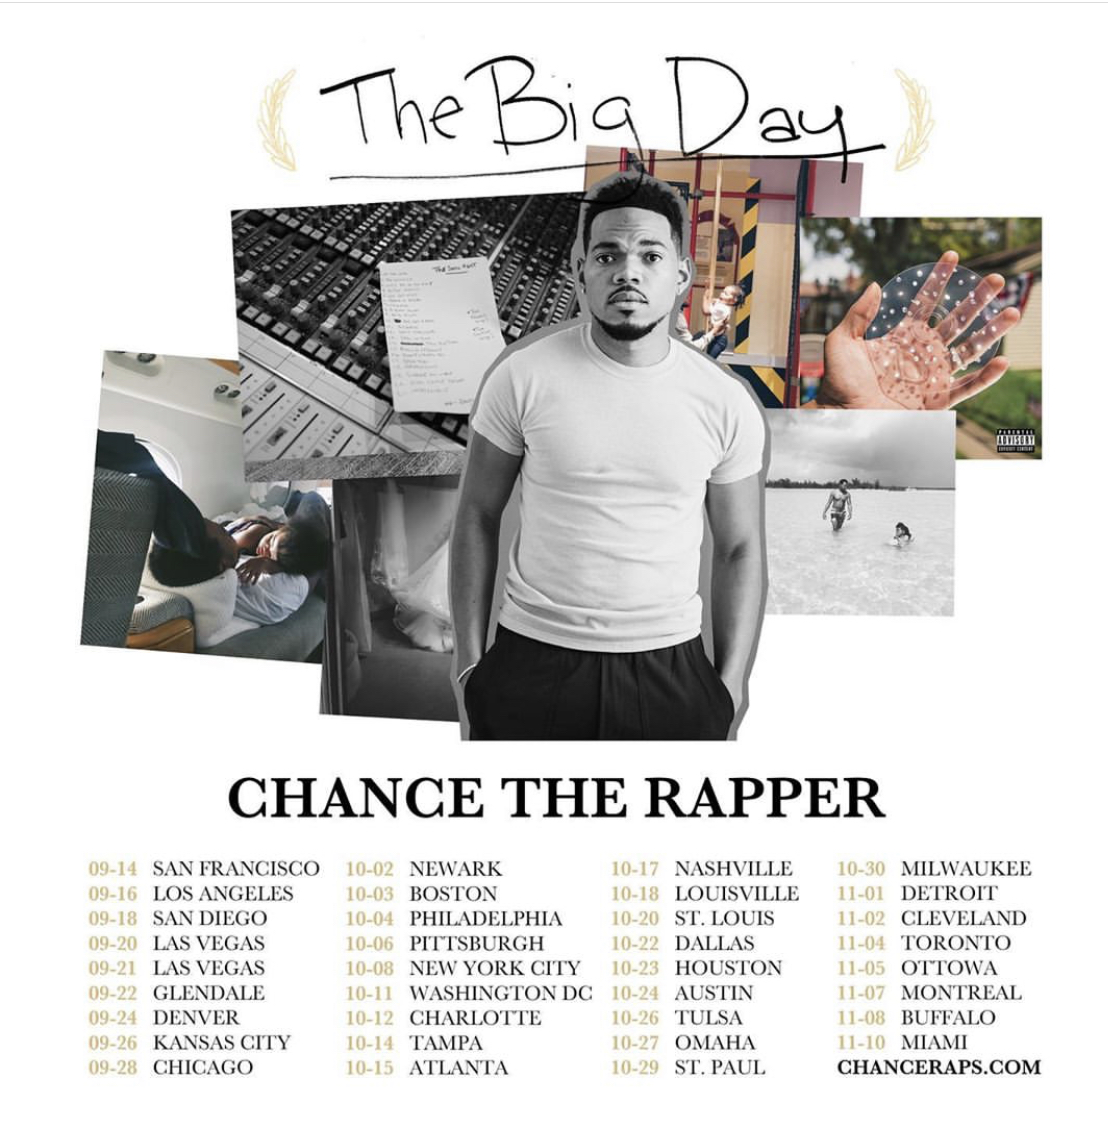 The Big Day Tour Chance the Rapper